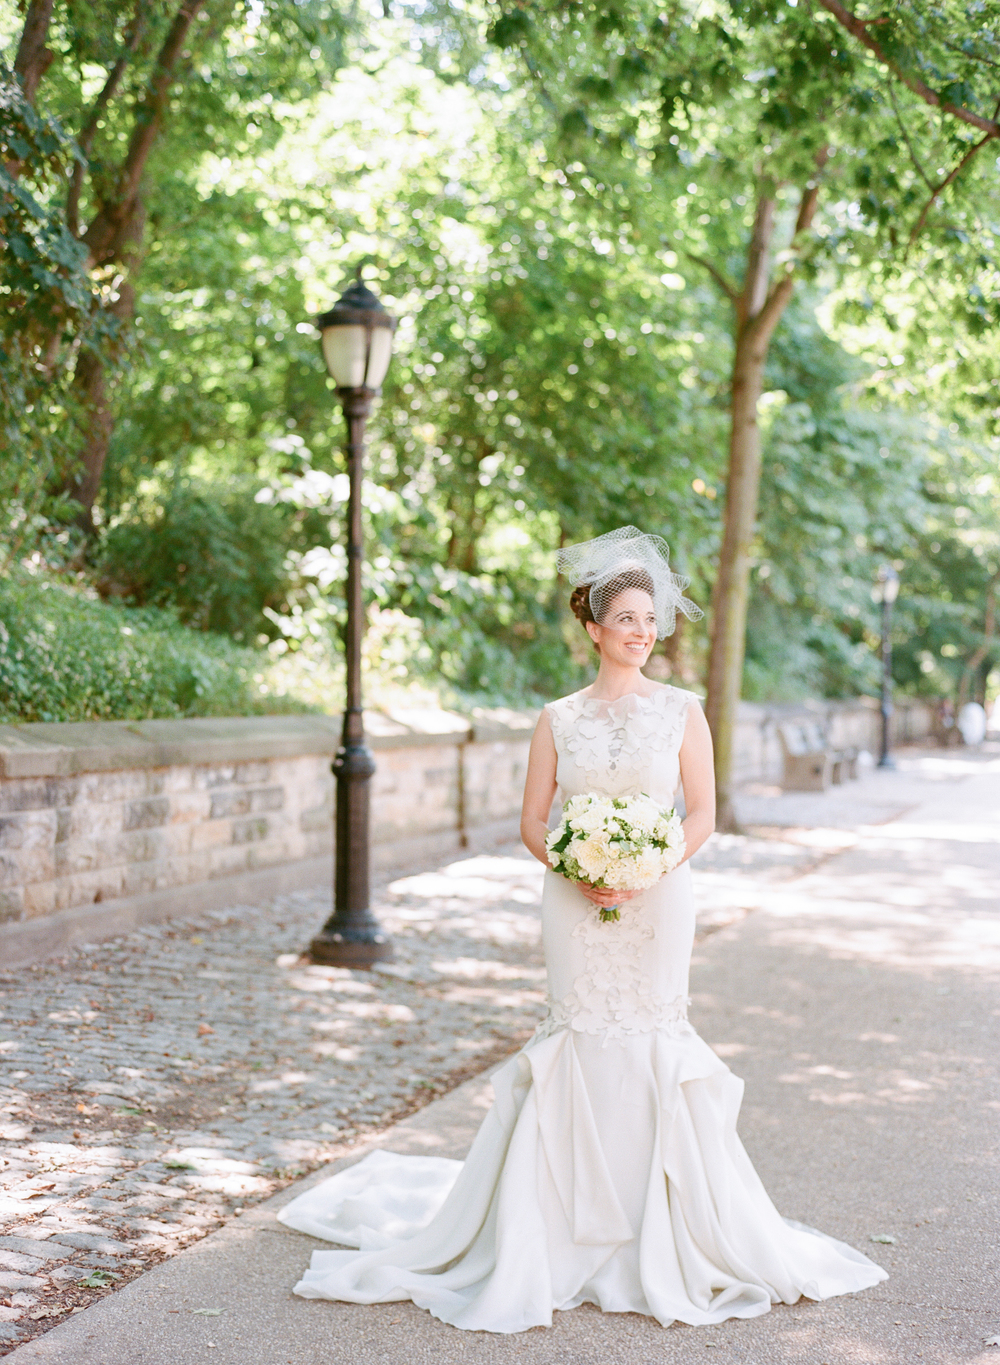 hannah_shih_hanaluluco_cj_isaac_charlie_juliet_ombre_chambray_prospect_park_brooklyn_wedding_2.jpg